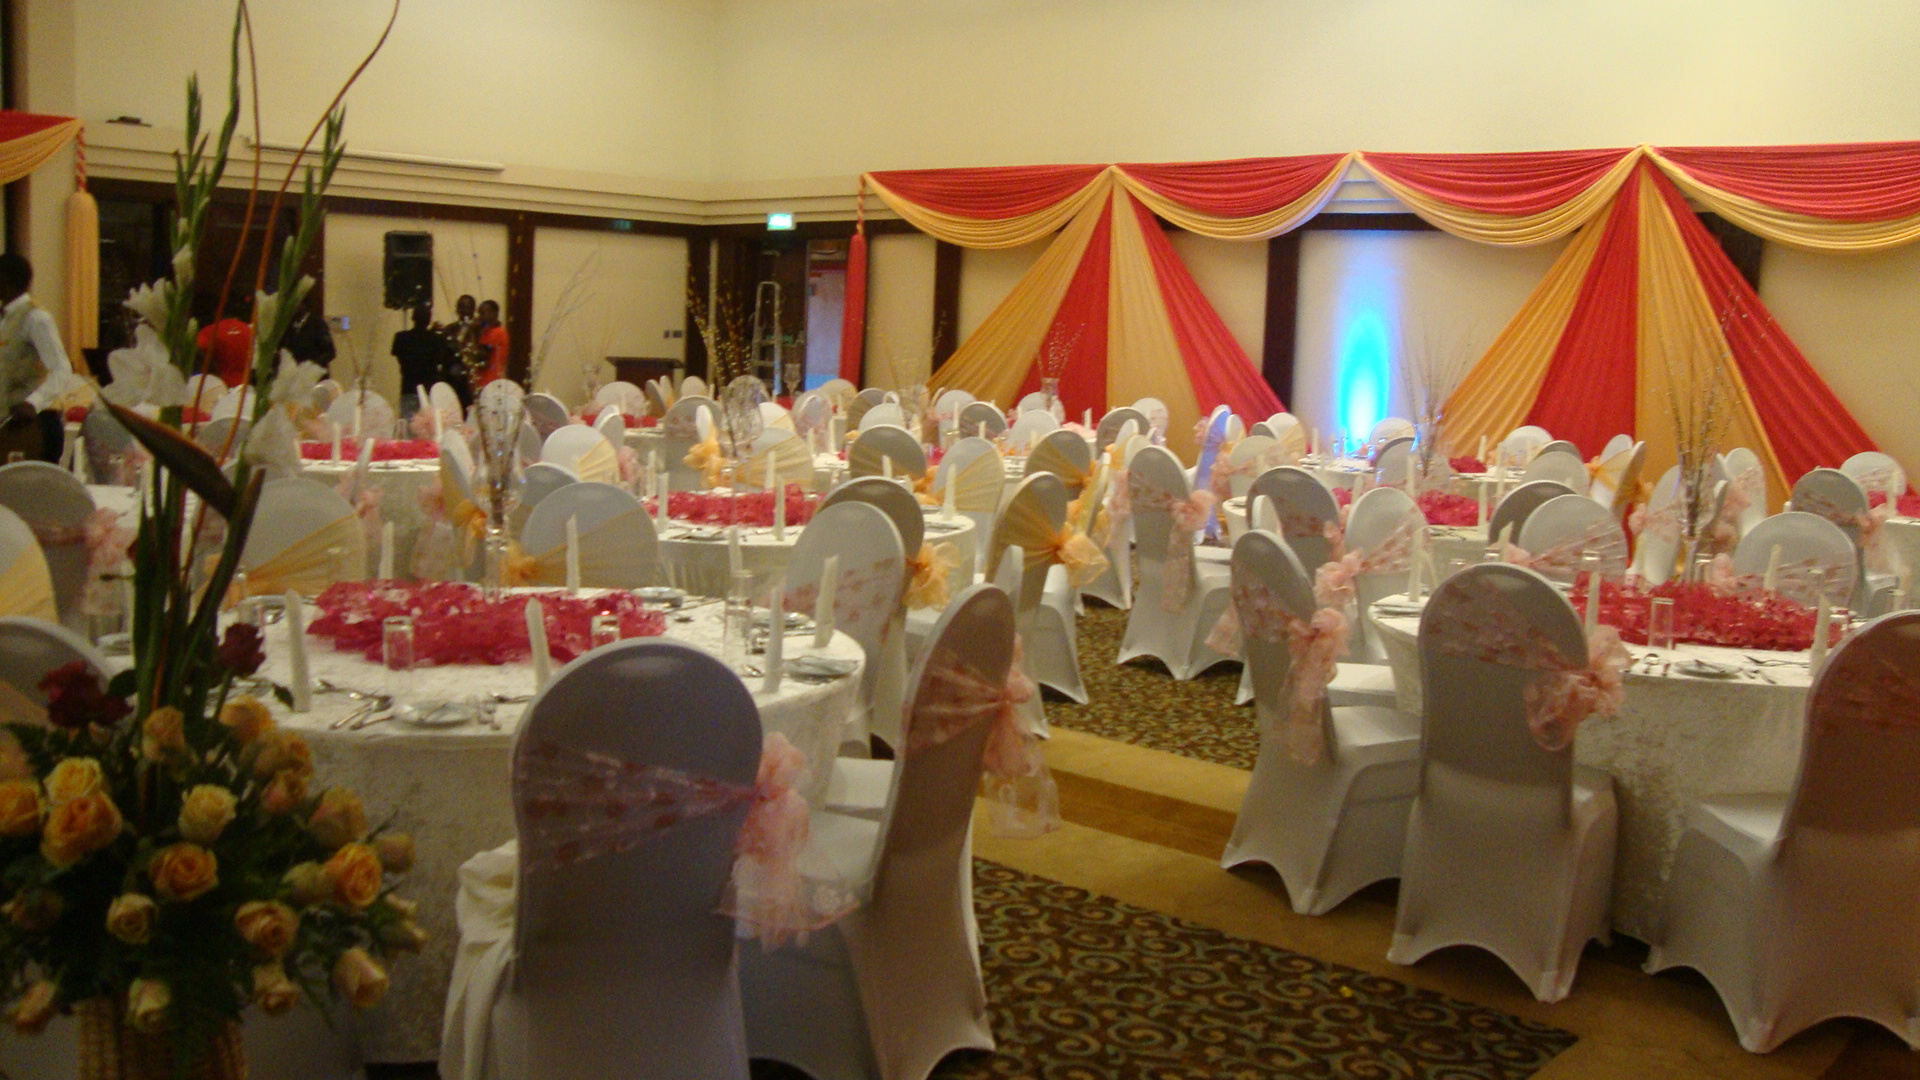 A view of the reception before guests arrived.